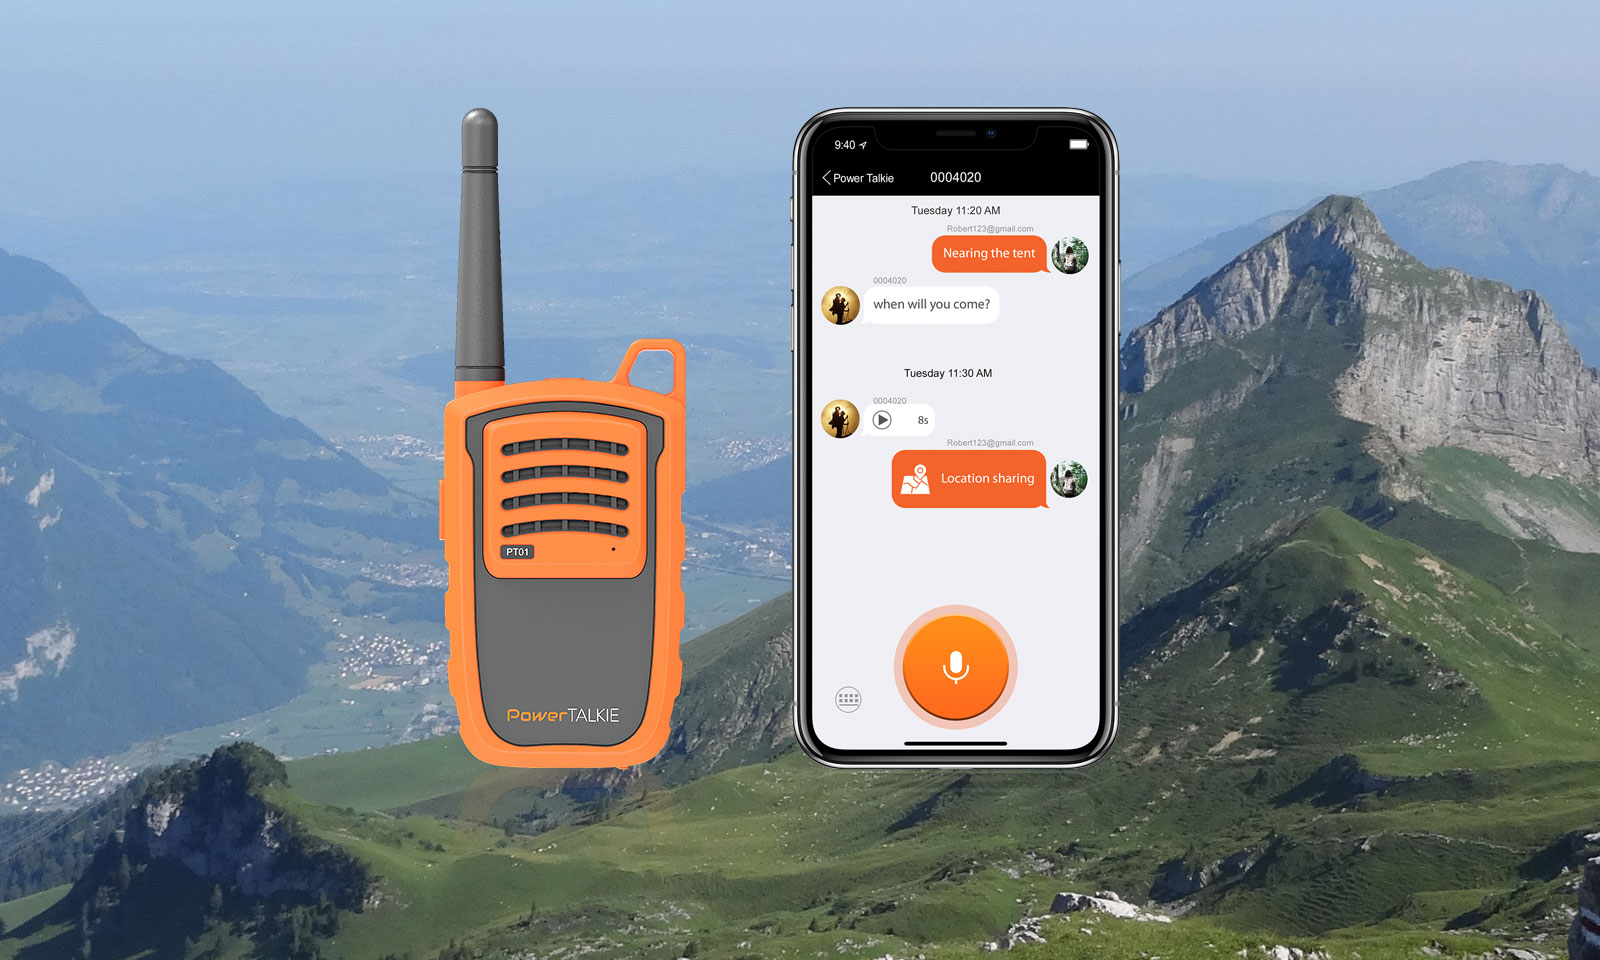 Power Talkie delivers backcountry text, talk & map sharing